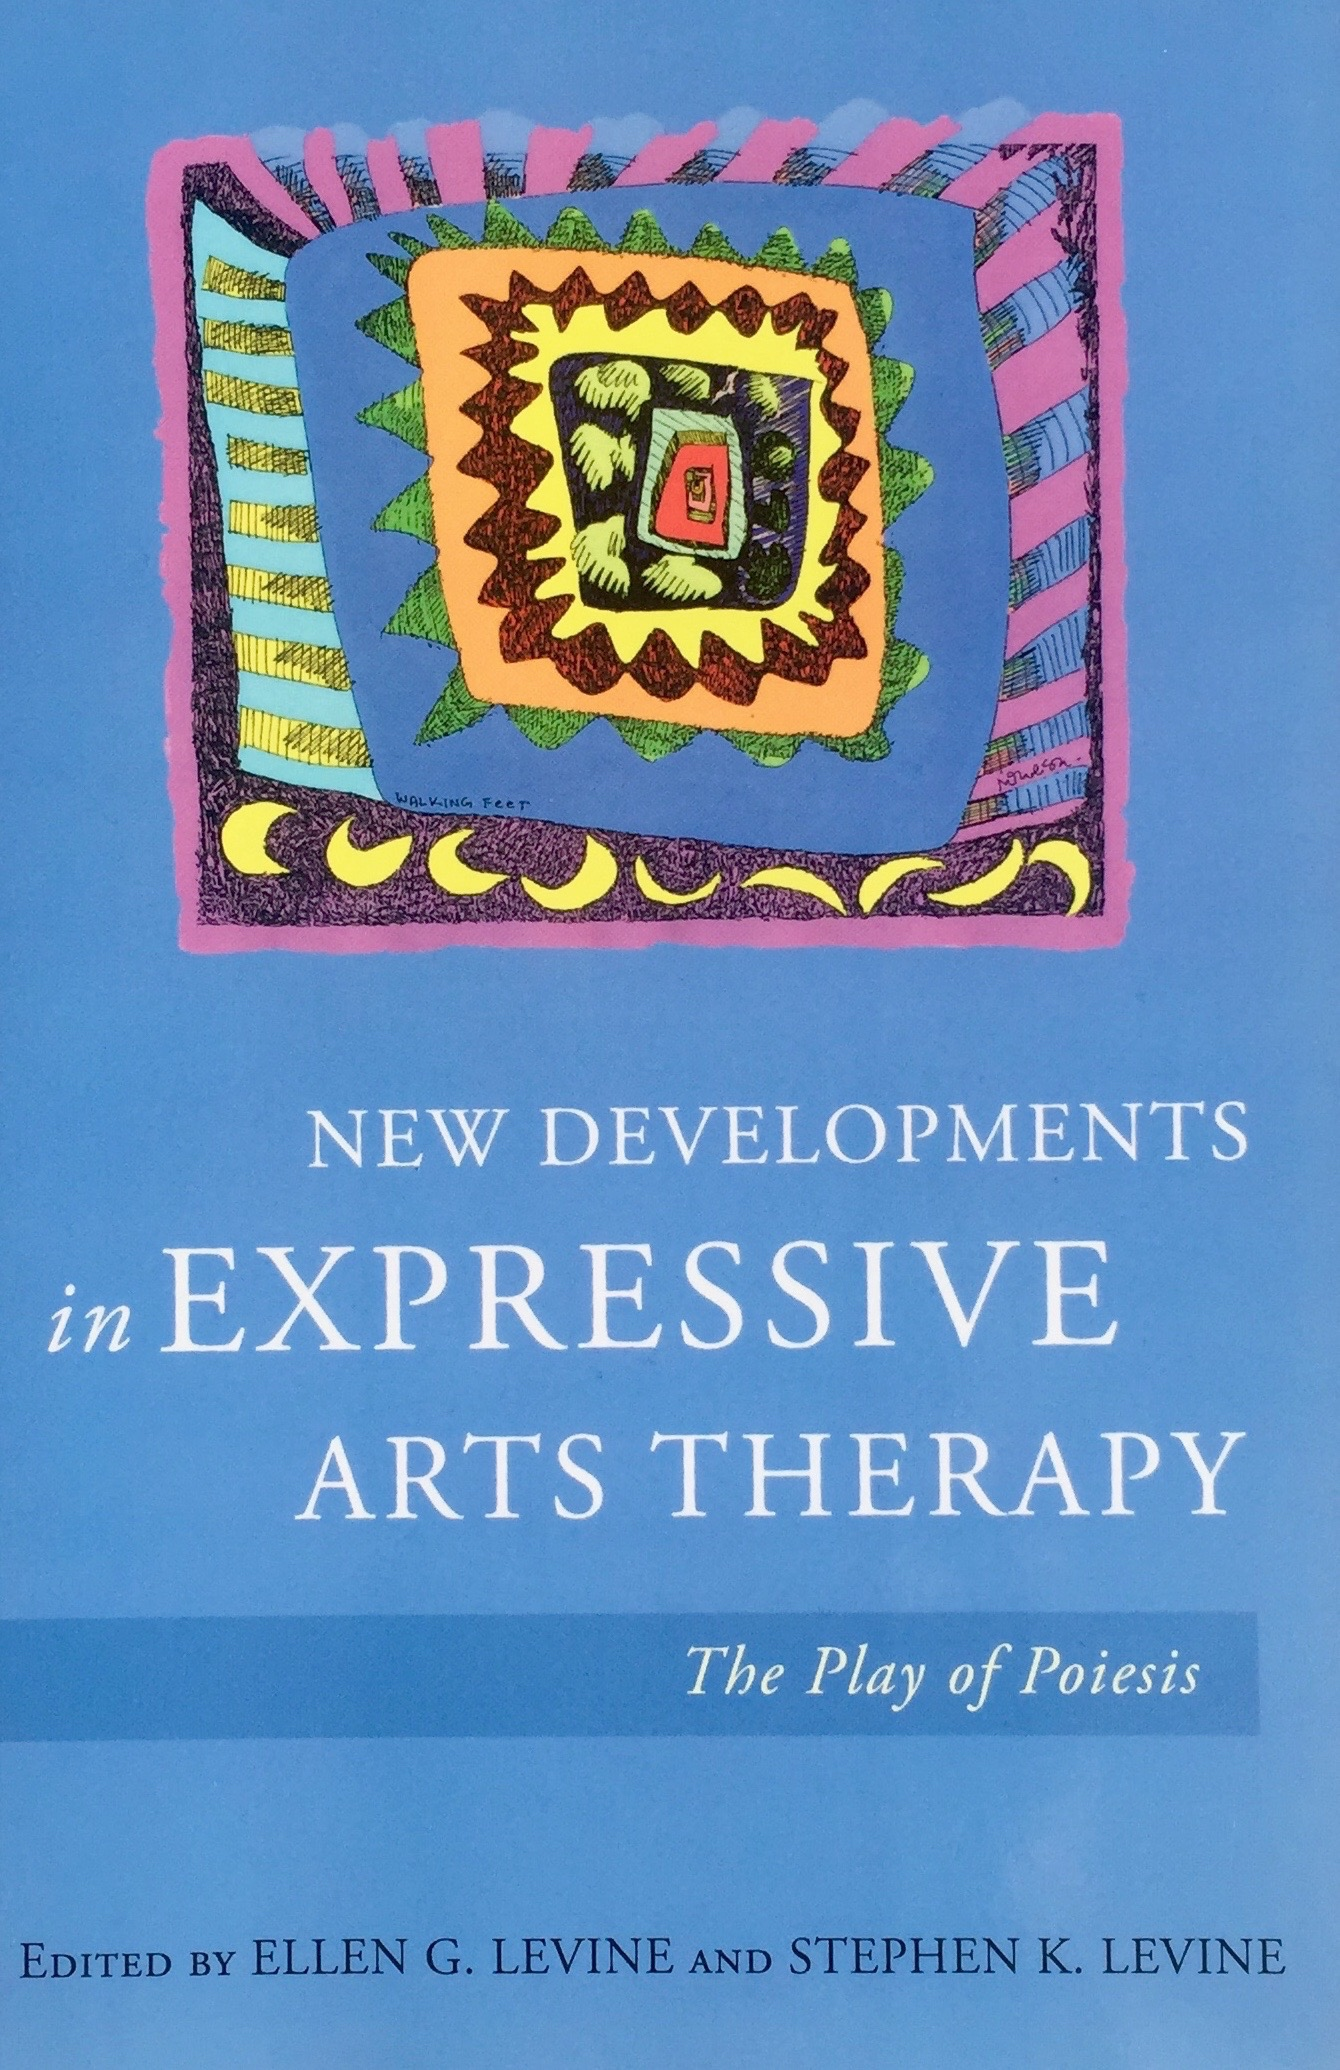 New Developments in Expressive Arts Therapy.jpg